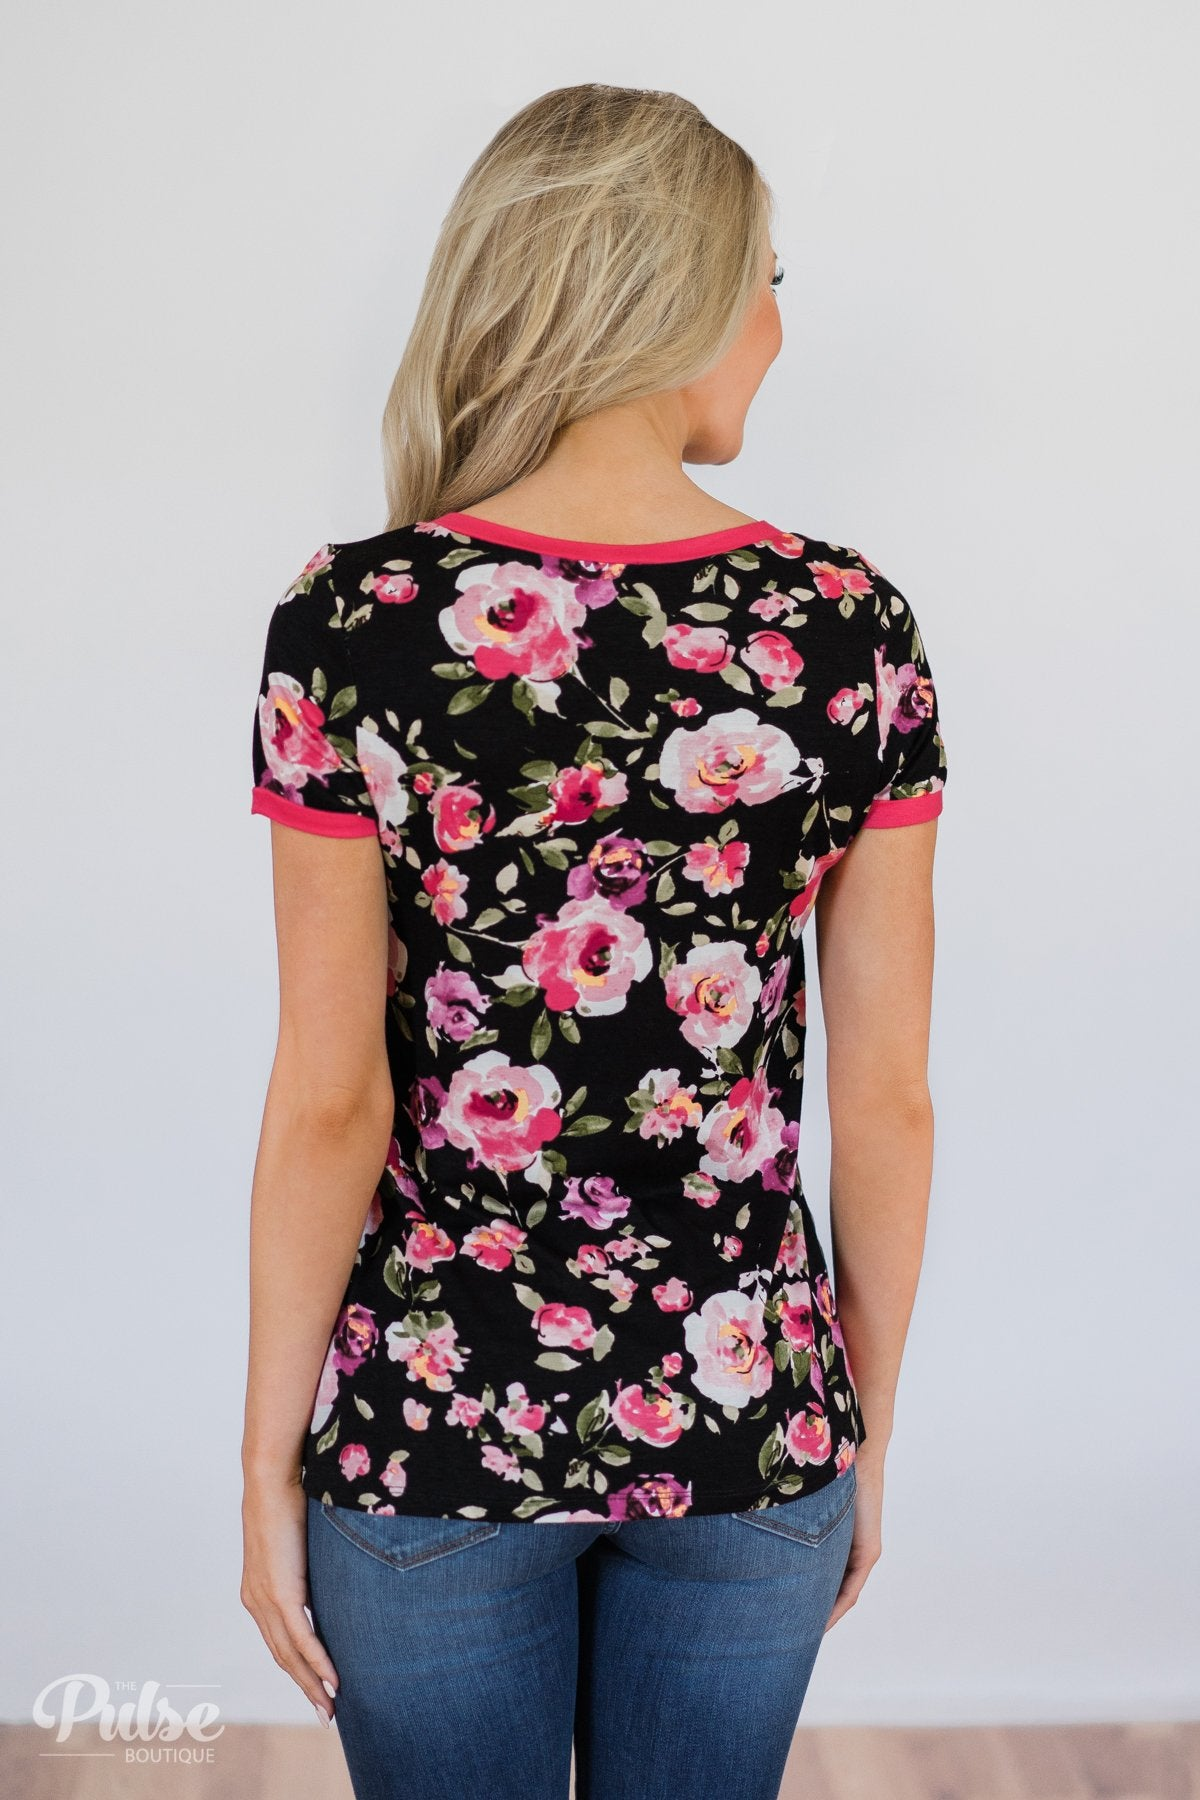 Borrow my Heart Floral V-Neck Pocket Top- Black